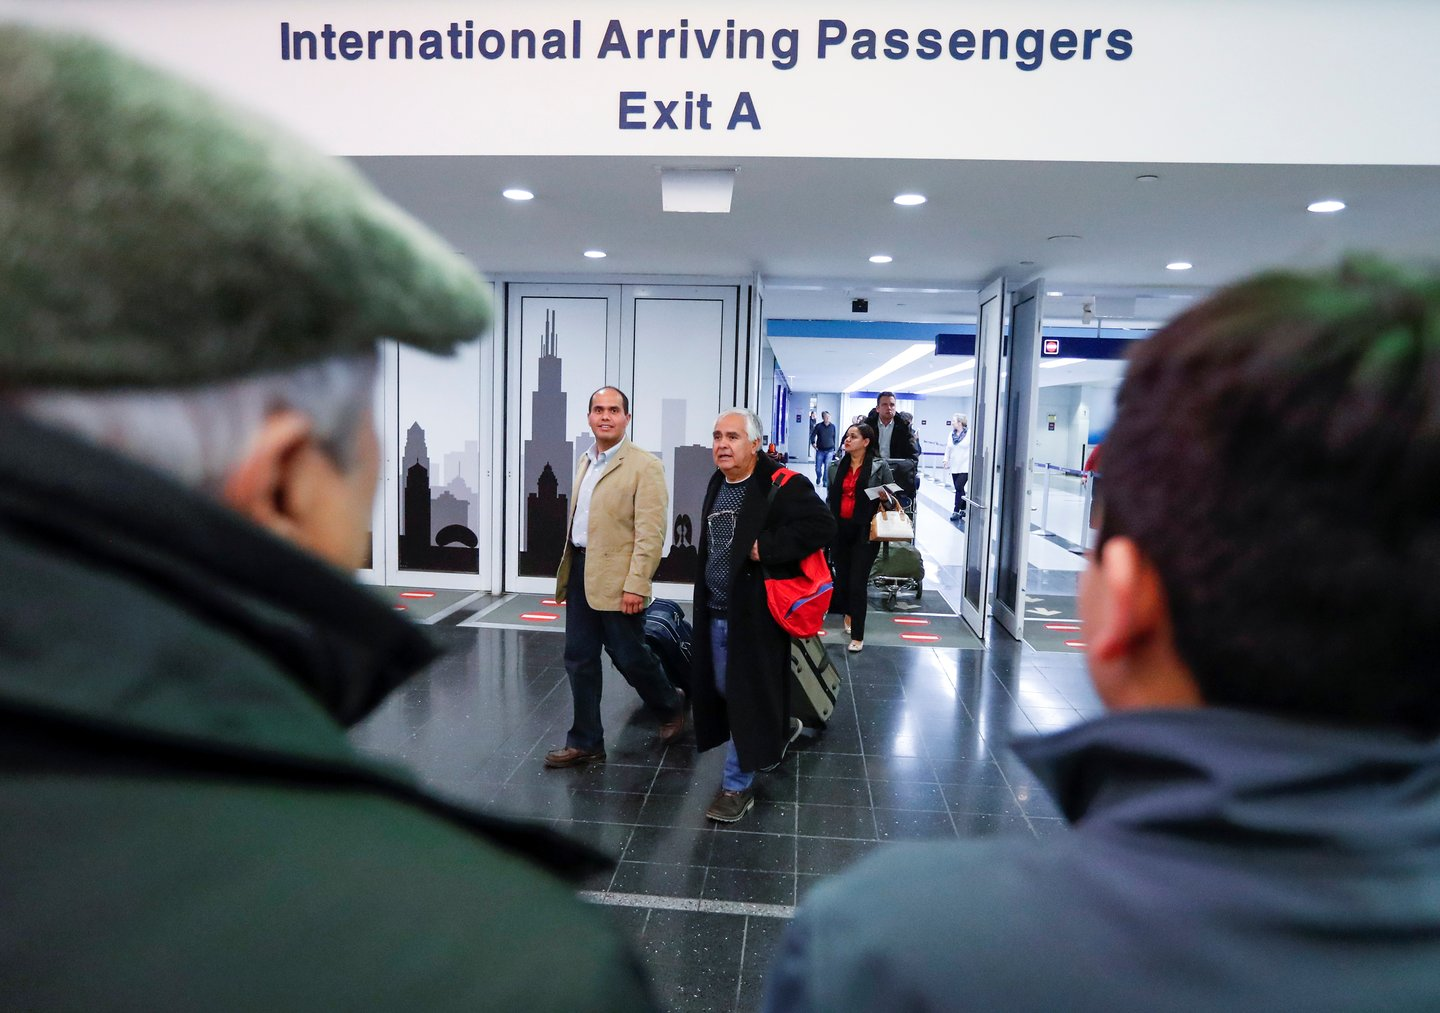 International Arrivals at O'Hare airport